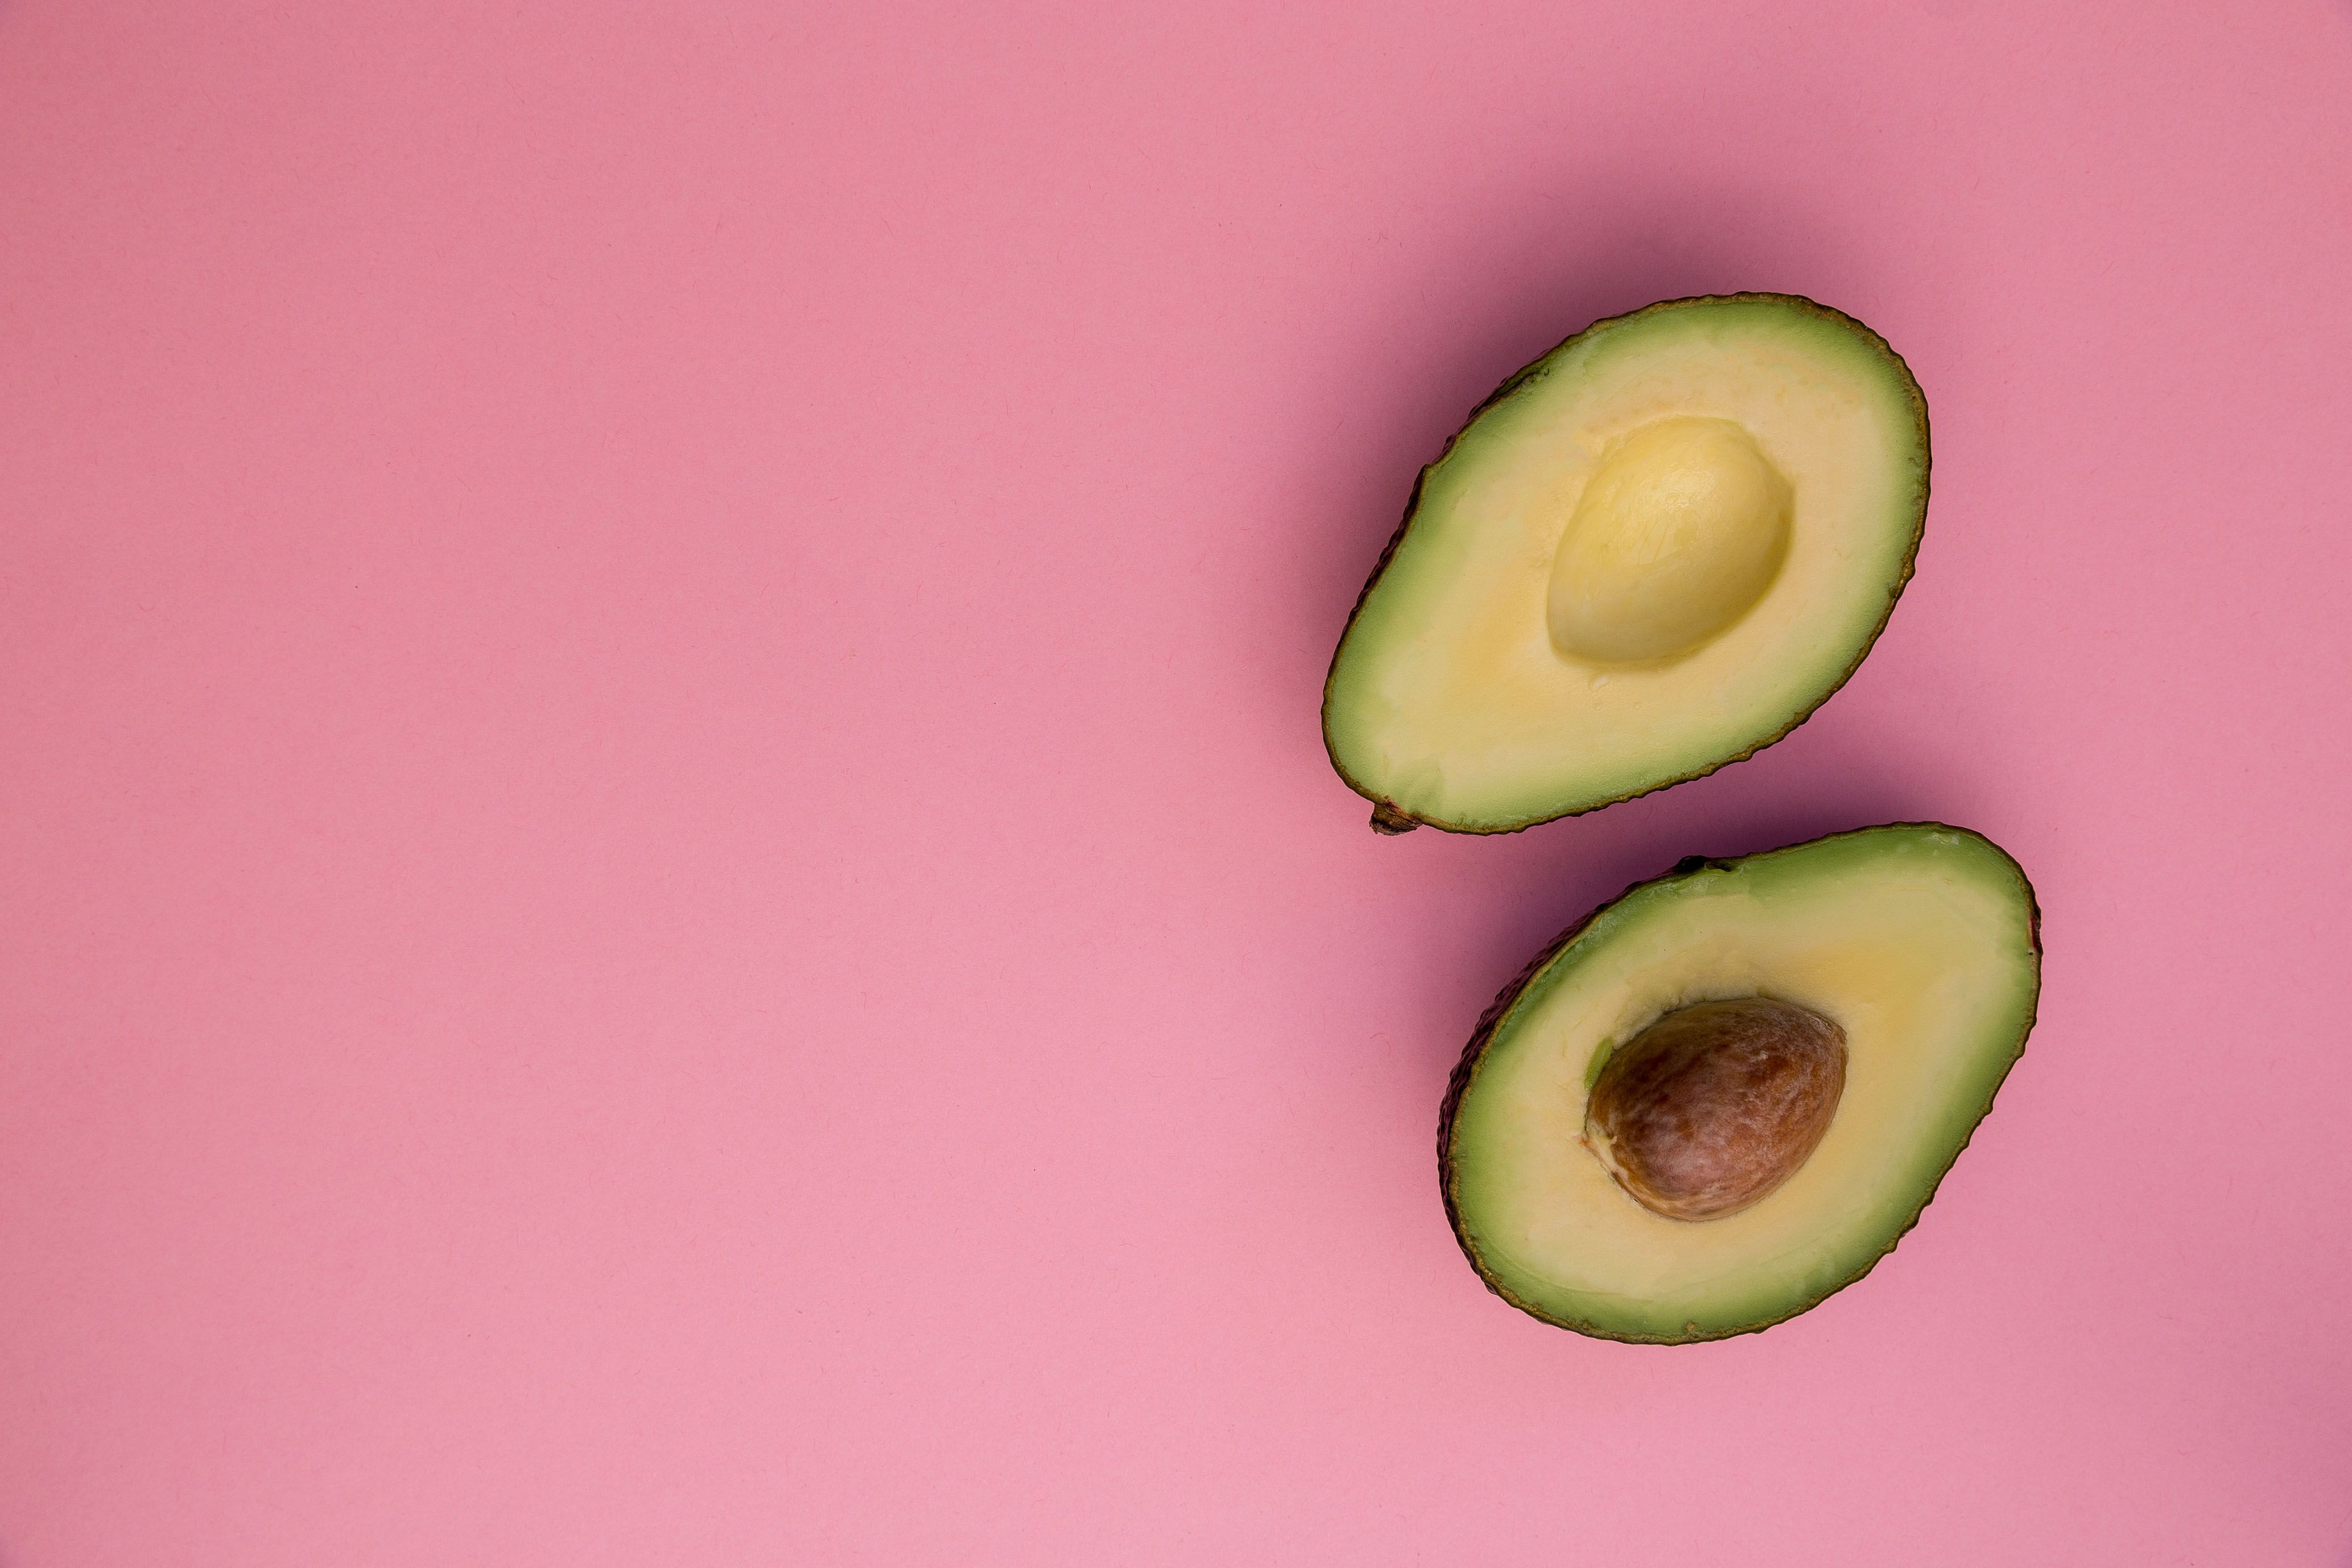 Avocado Beauty: 7 Ways to Use the Green Guy on Your Skin and Hair